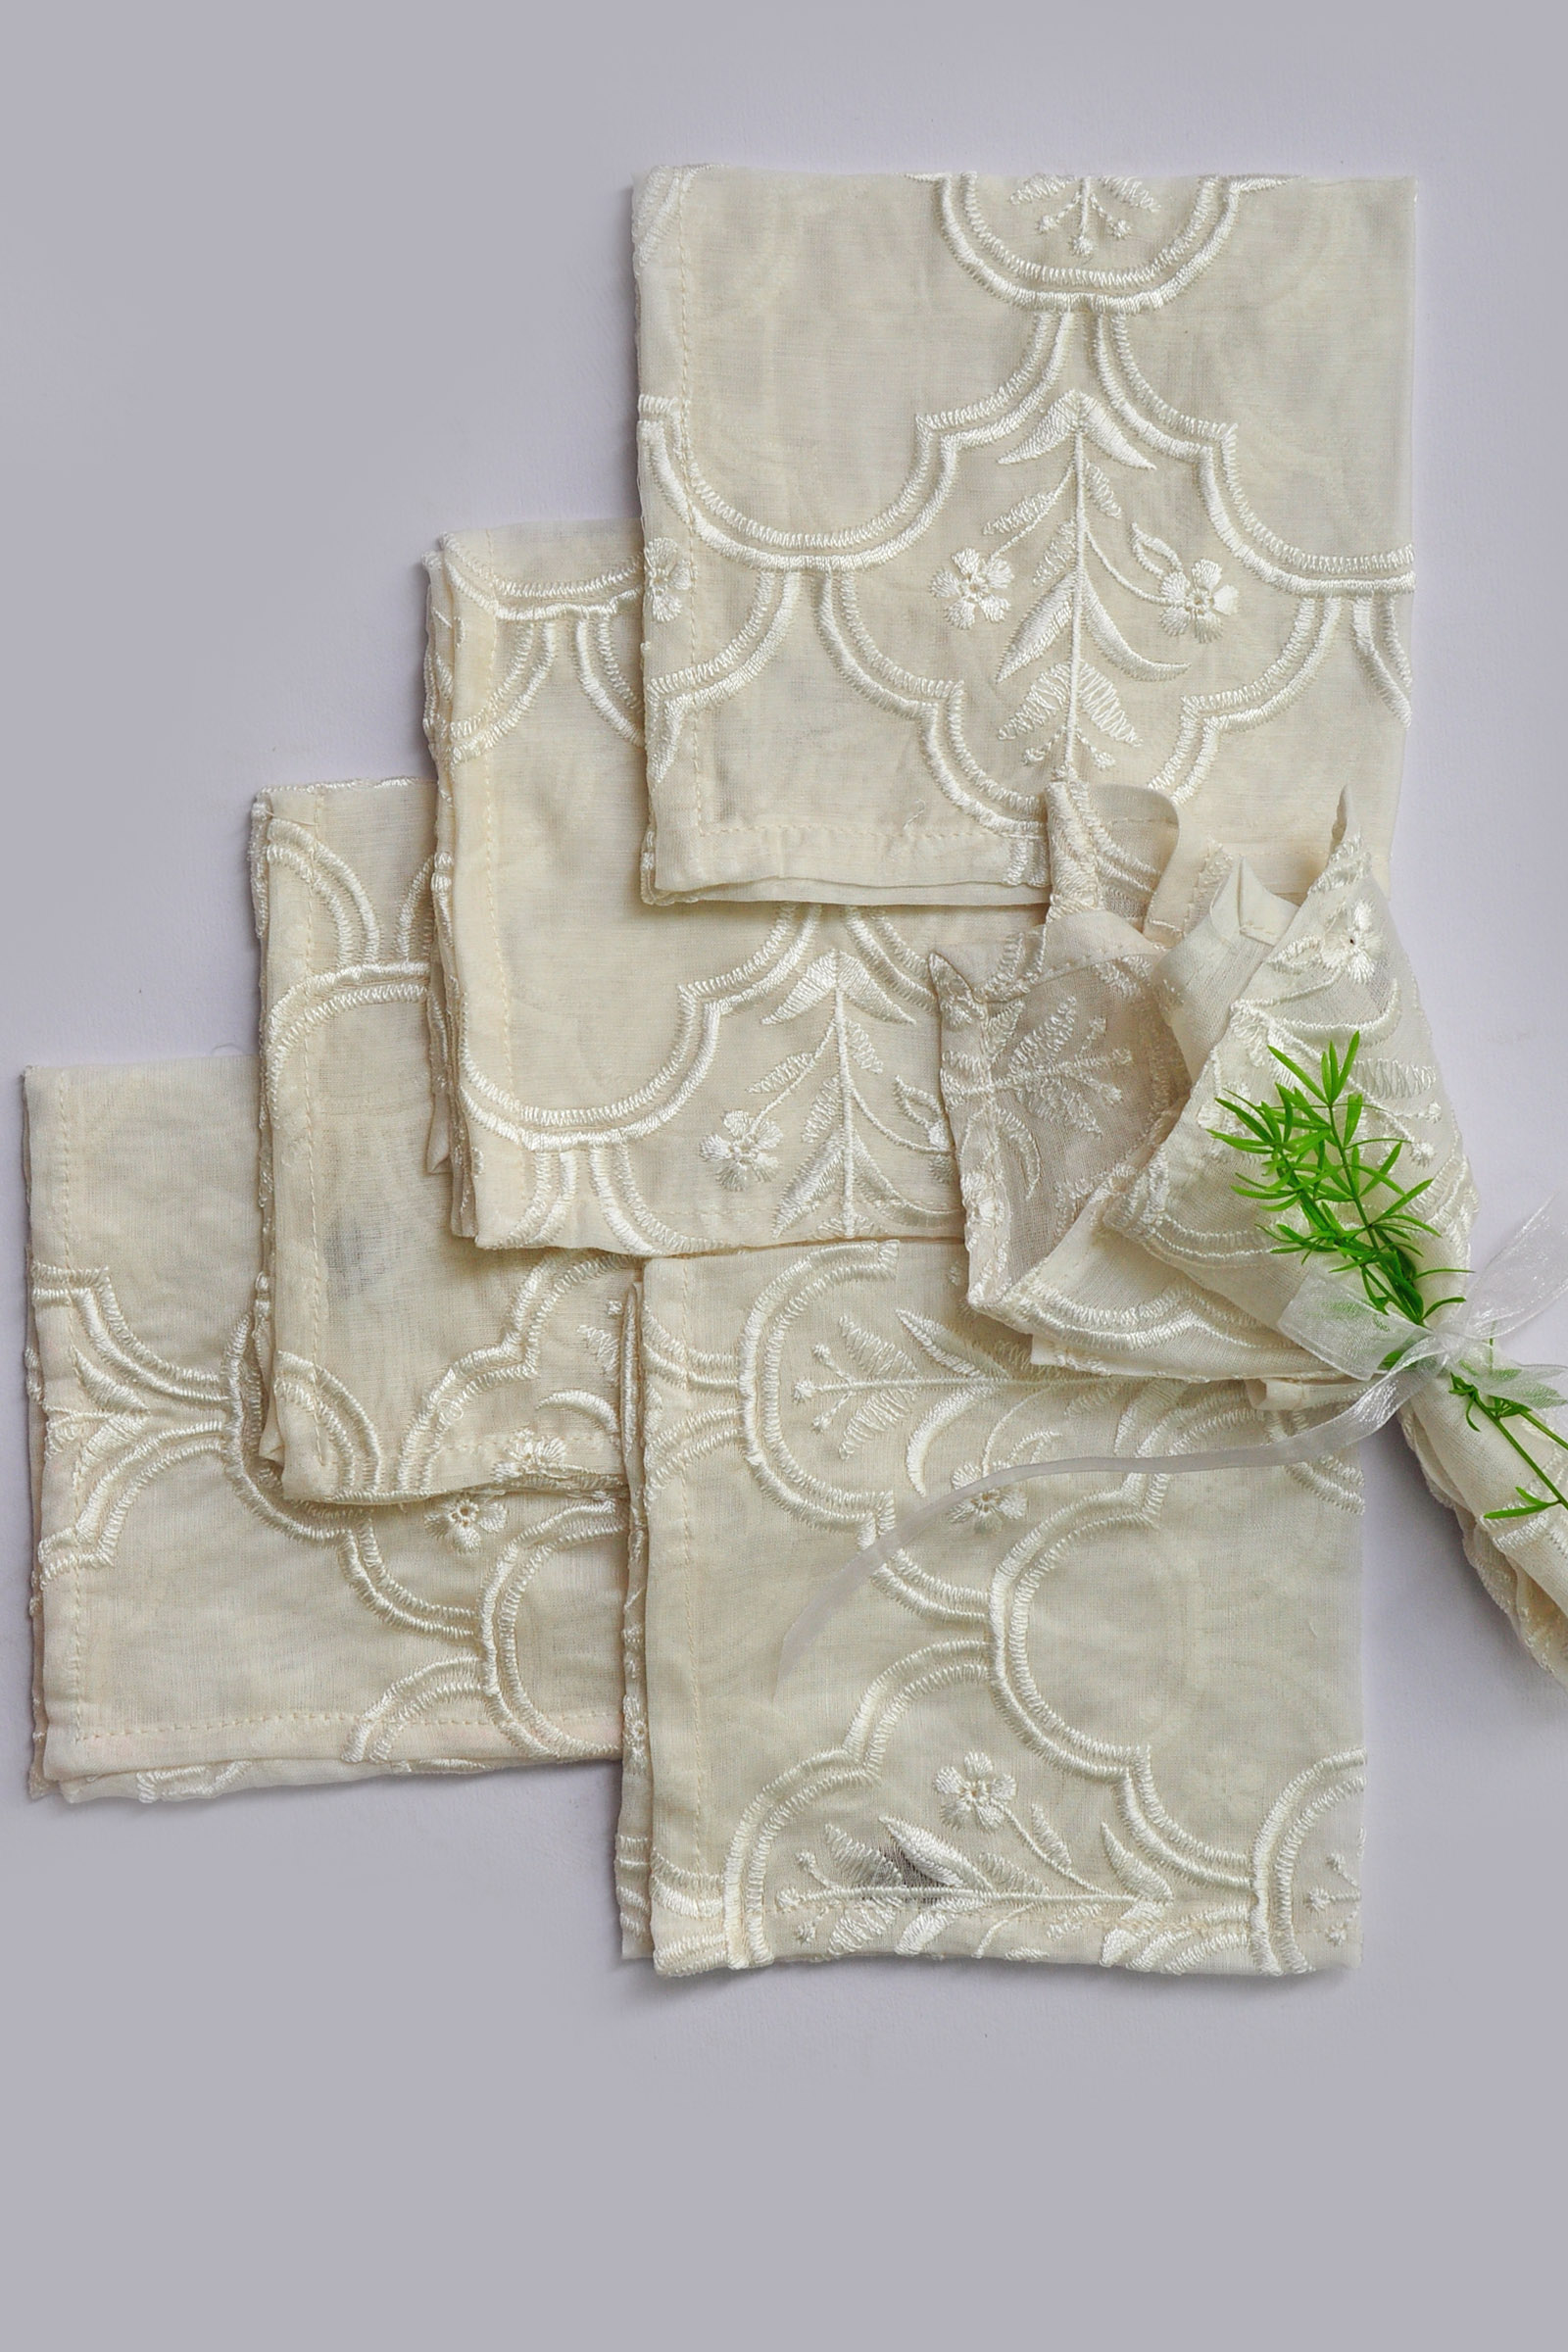 Paradise Garden Napkin Set Of 6